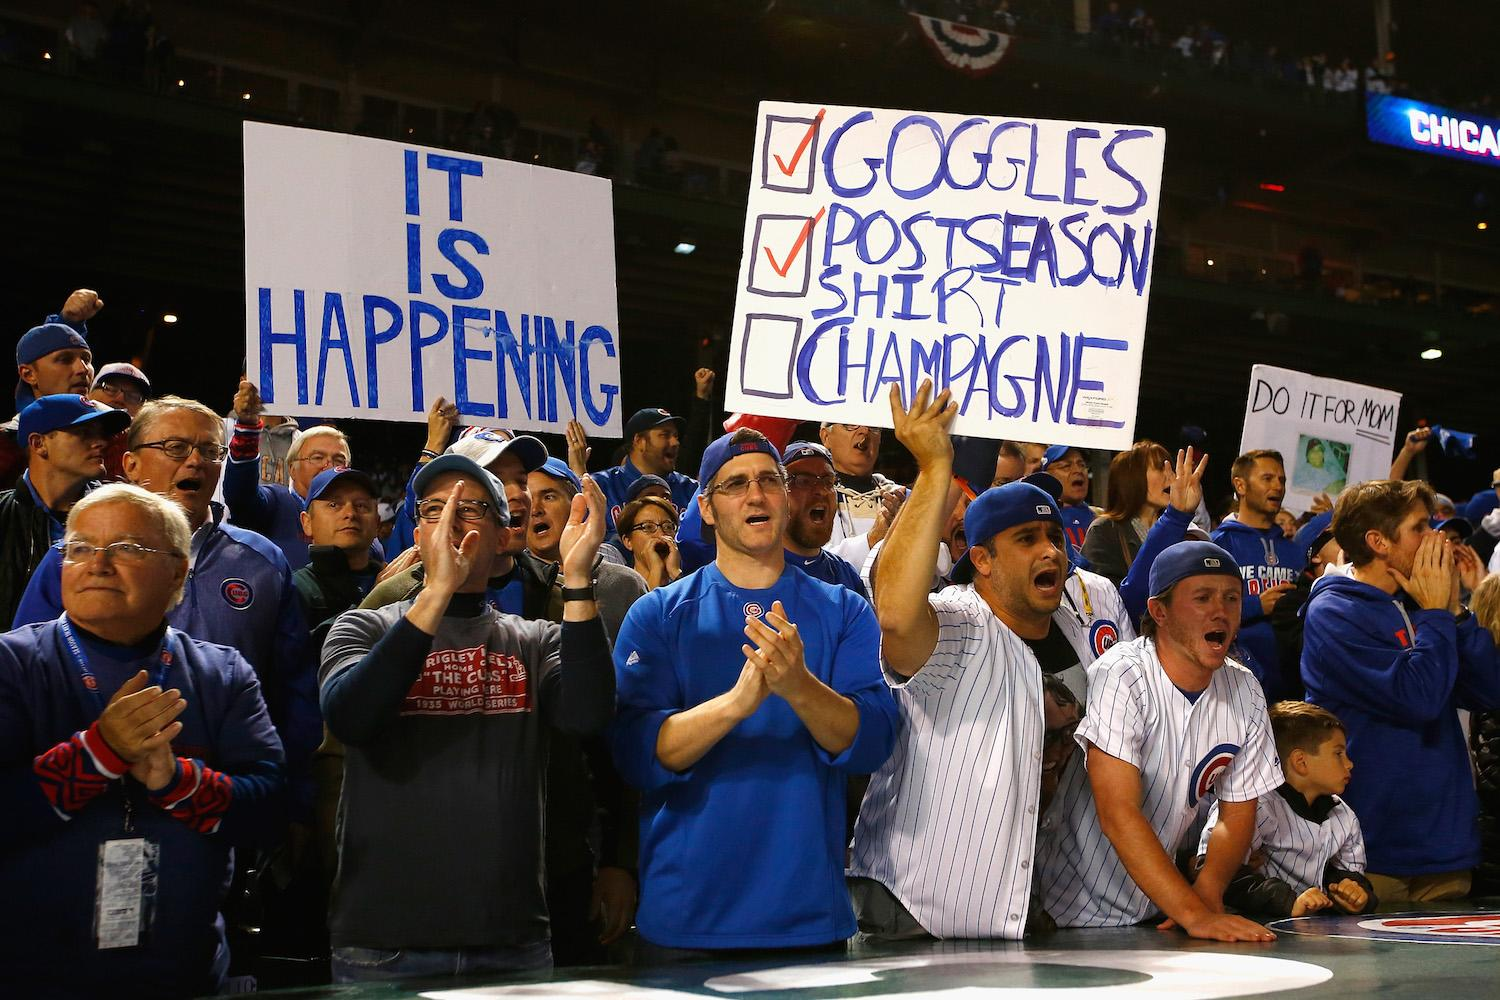 Cubs fans started lining up at Wrigleyville bars more than 12 hours before Game 3 of the World Series